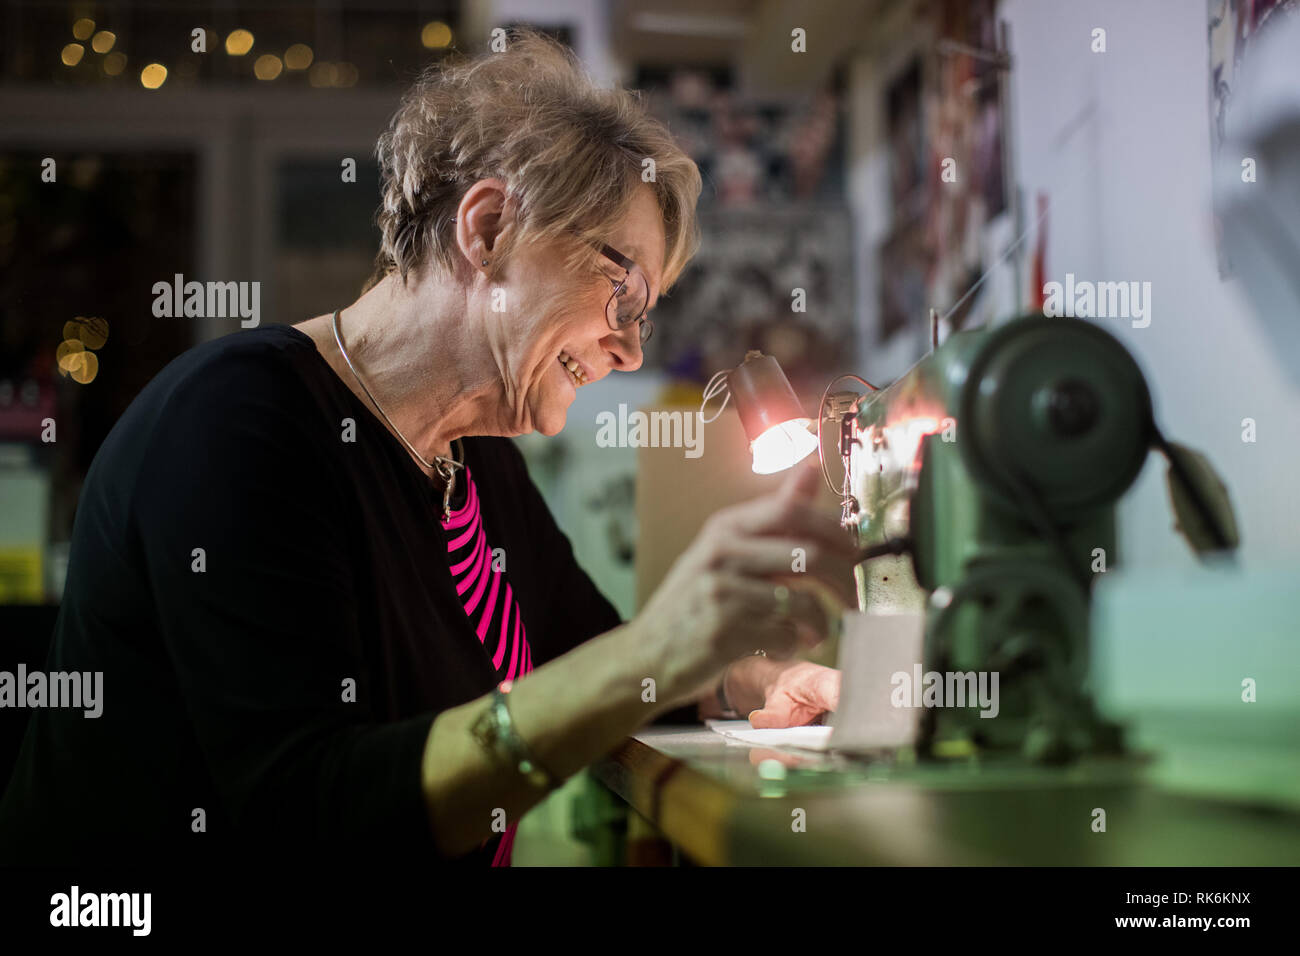 08 February 2019, North Rhine-Westphalia, Köln: EXCLUSIVE - Master tailor Liane Gramsch-Rudolph is working on a tailor-made uniform in her studio. As Guest of Honour of the Traditional Corps, North Rhine-Westphalia's Interior Minister Reul will ride on the Red Spark wagon of the Cologne Shrove Monday Train. (to dpa 'Celebrities let their pants down with her - Cologne's carnival tailor' from 10.02.2019) Photo: Rolf Vennenbernd/dpa - Stock Image